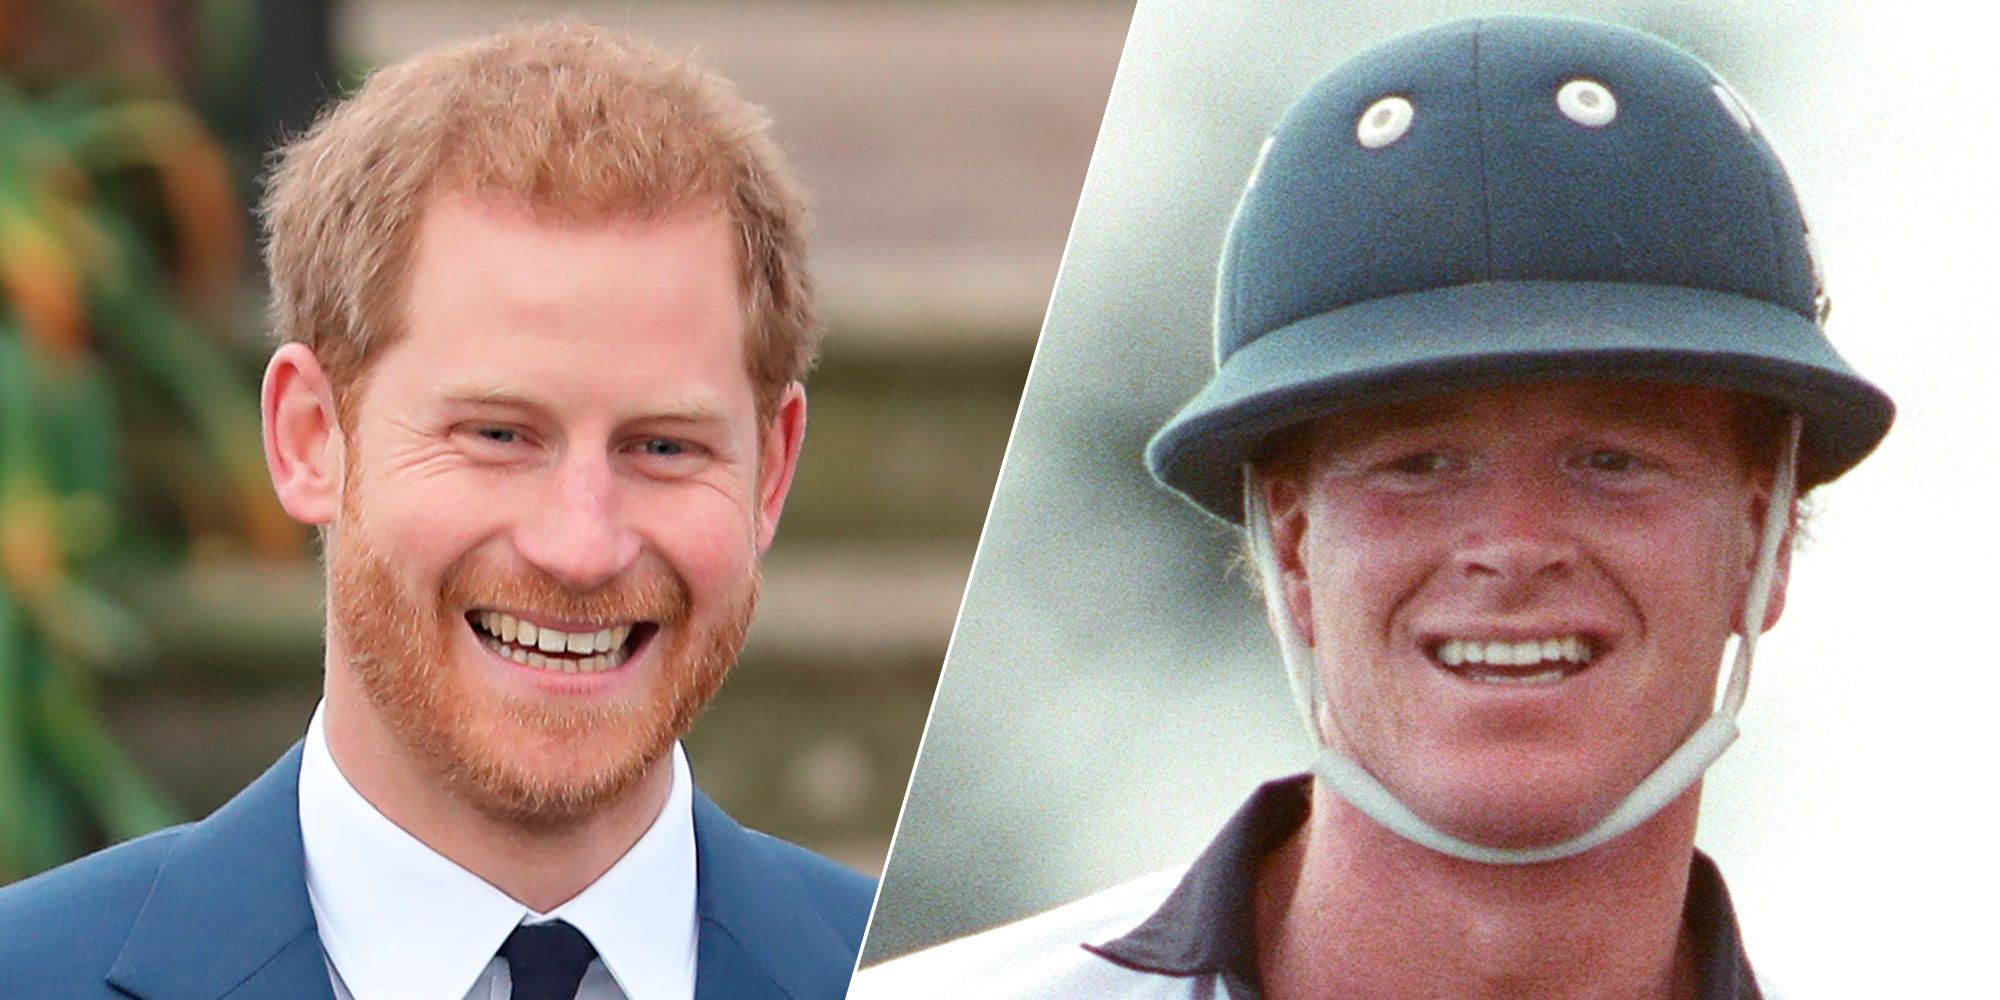 who is prince harry s real dad james hewitt and prince charles paternity rumors james hewitt and prince charles